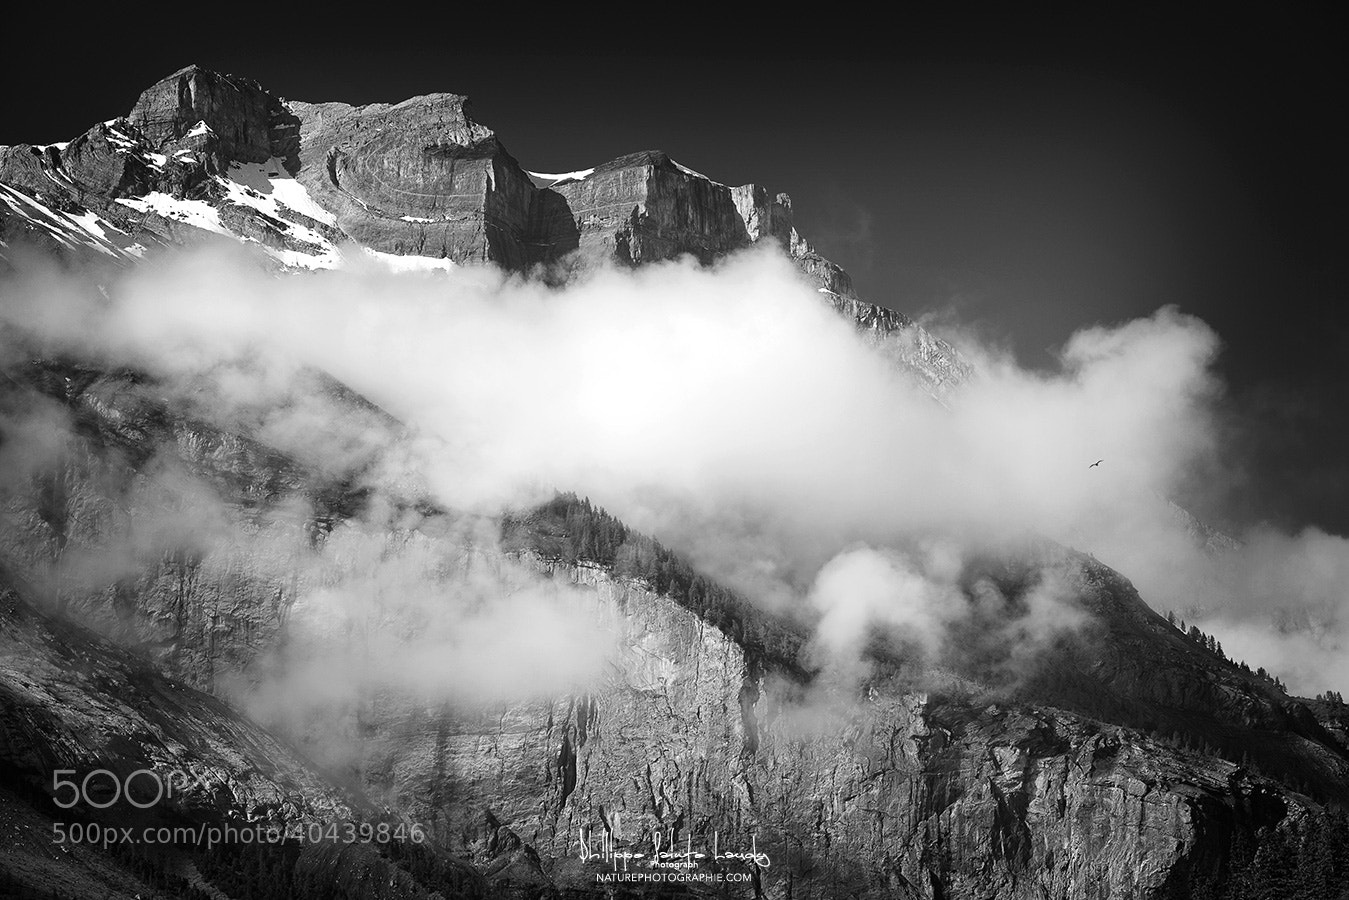 Photograph Cold Wind Blowin by Philippe Sainte-Laudy on 500px